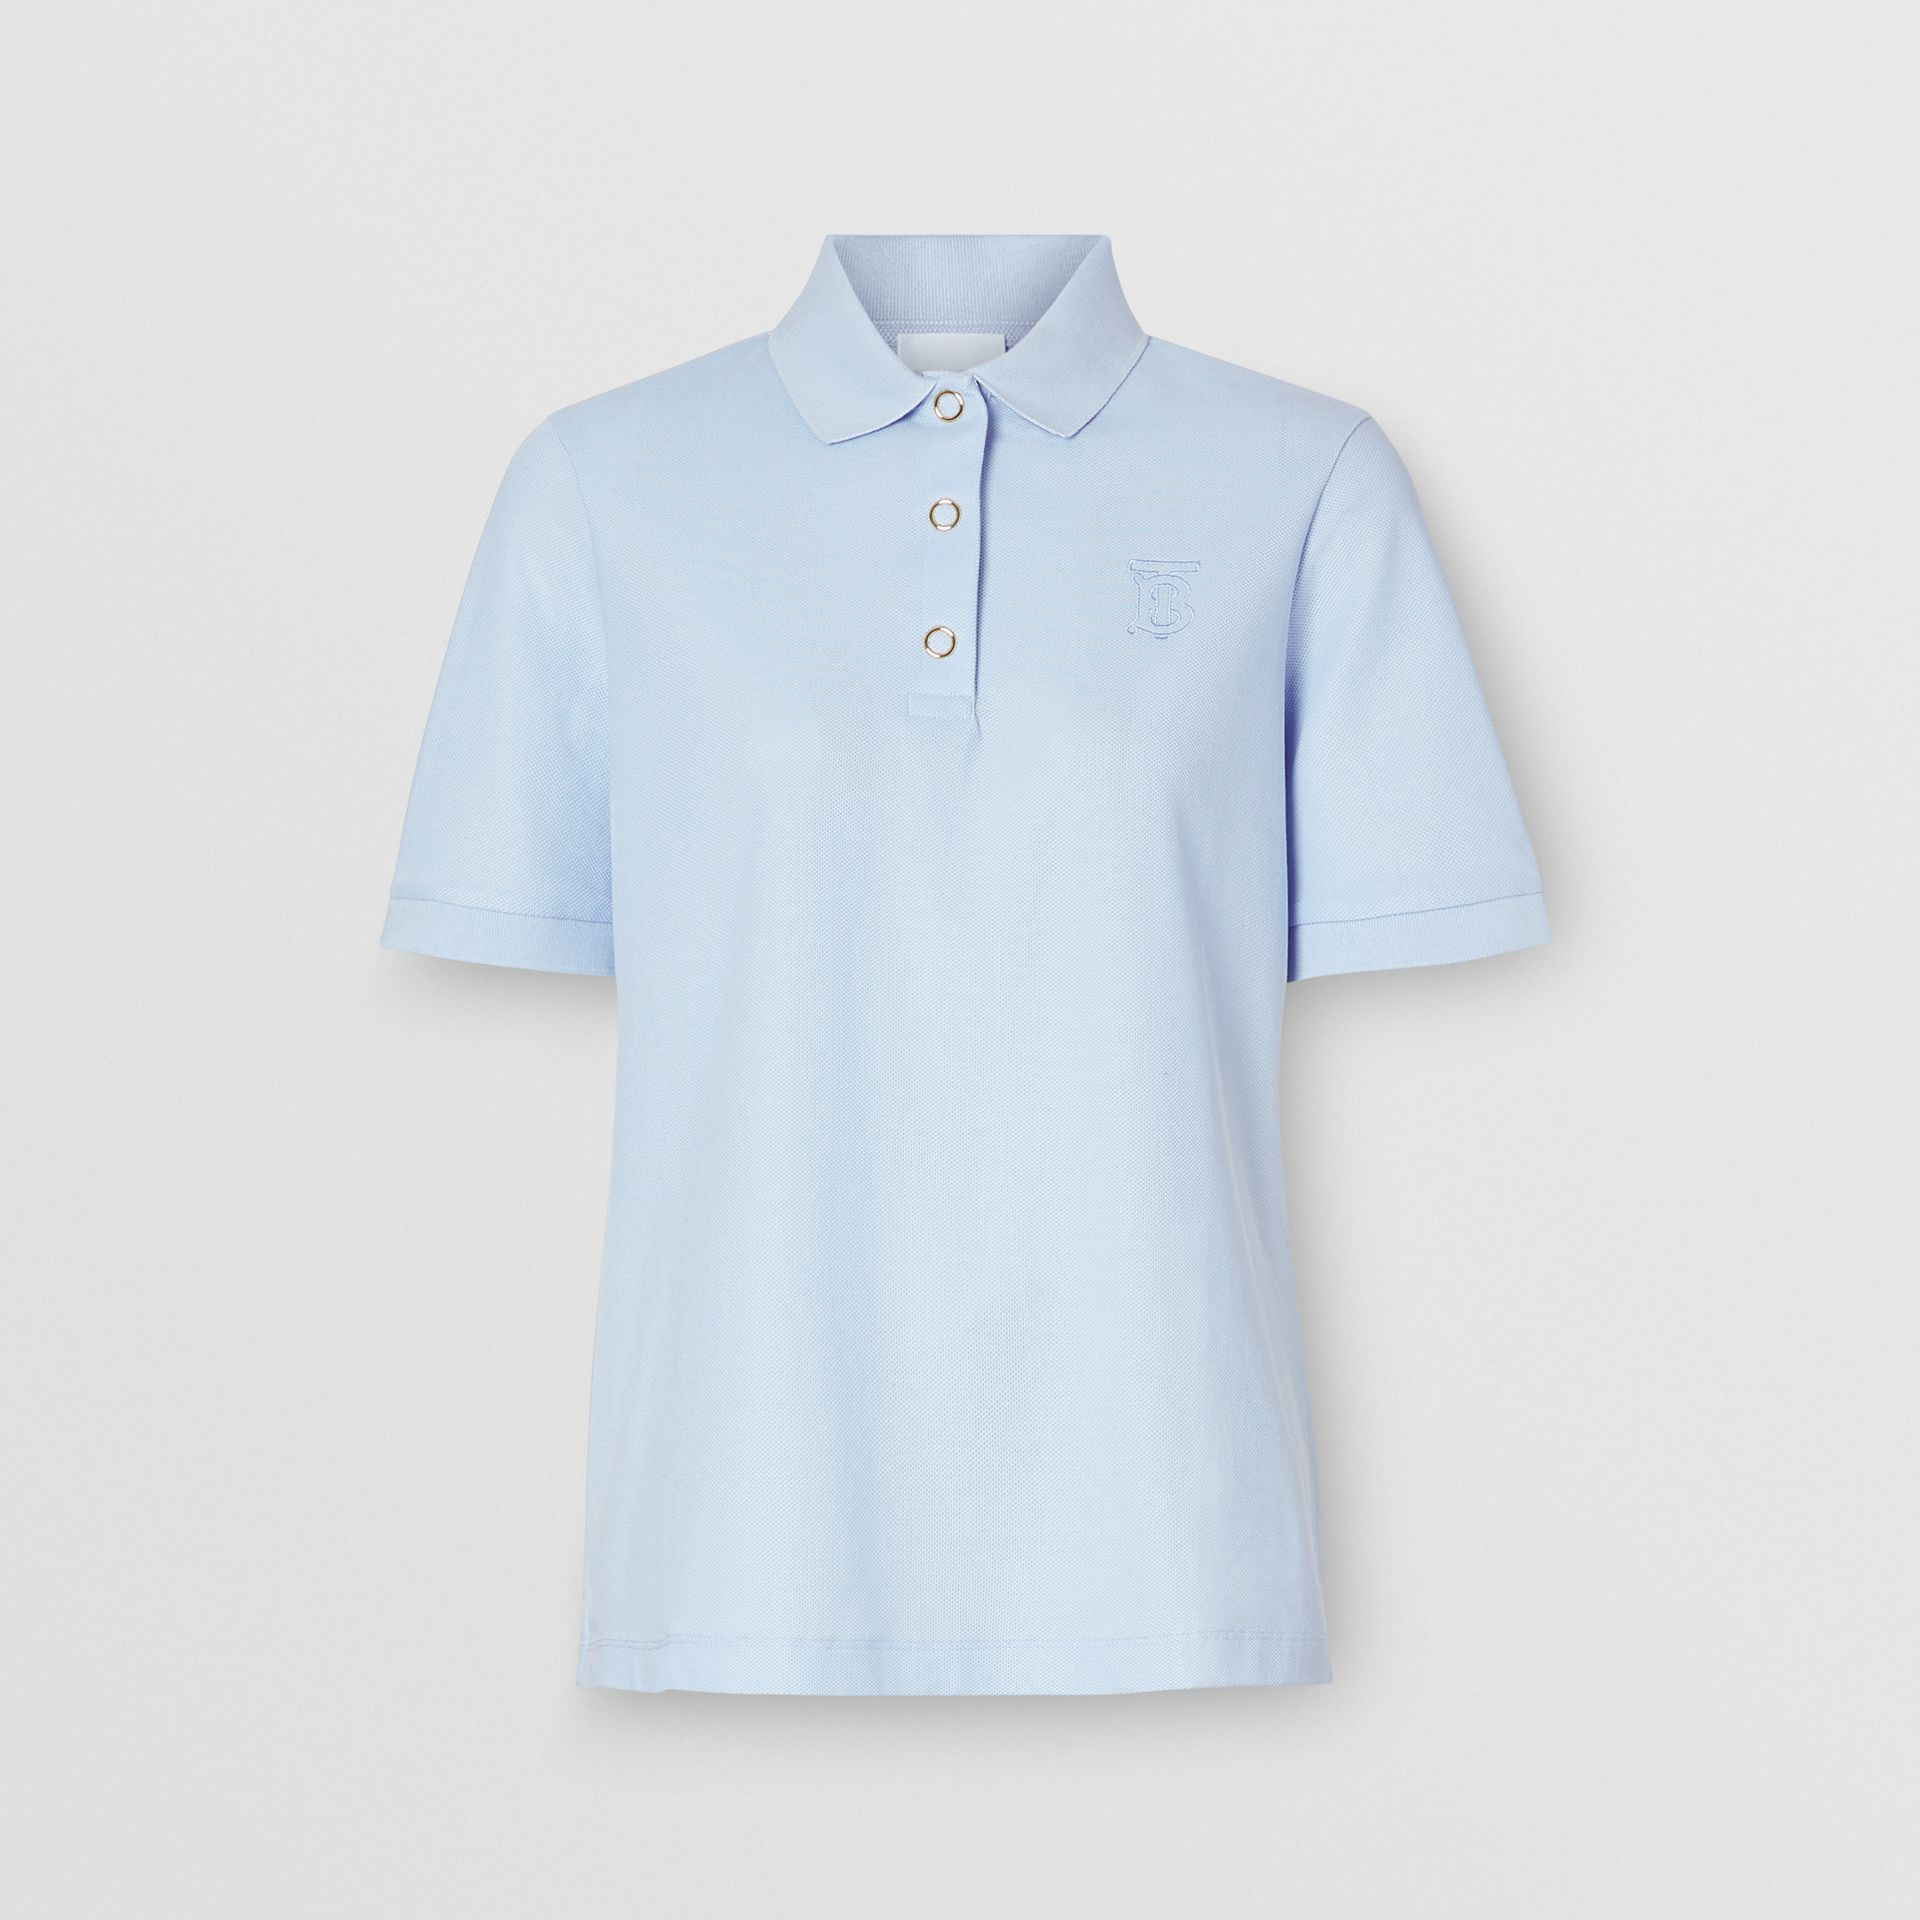 Monogram Motif Cotton Piqué Polo Shirt in Pale Blue - Women | Burberry Canada - gallery image 3